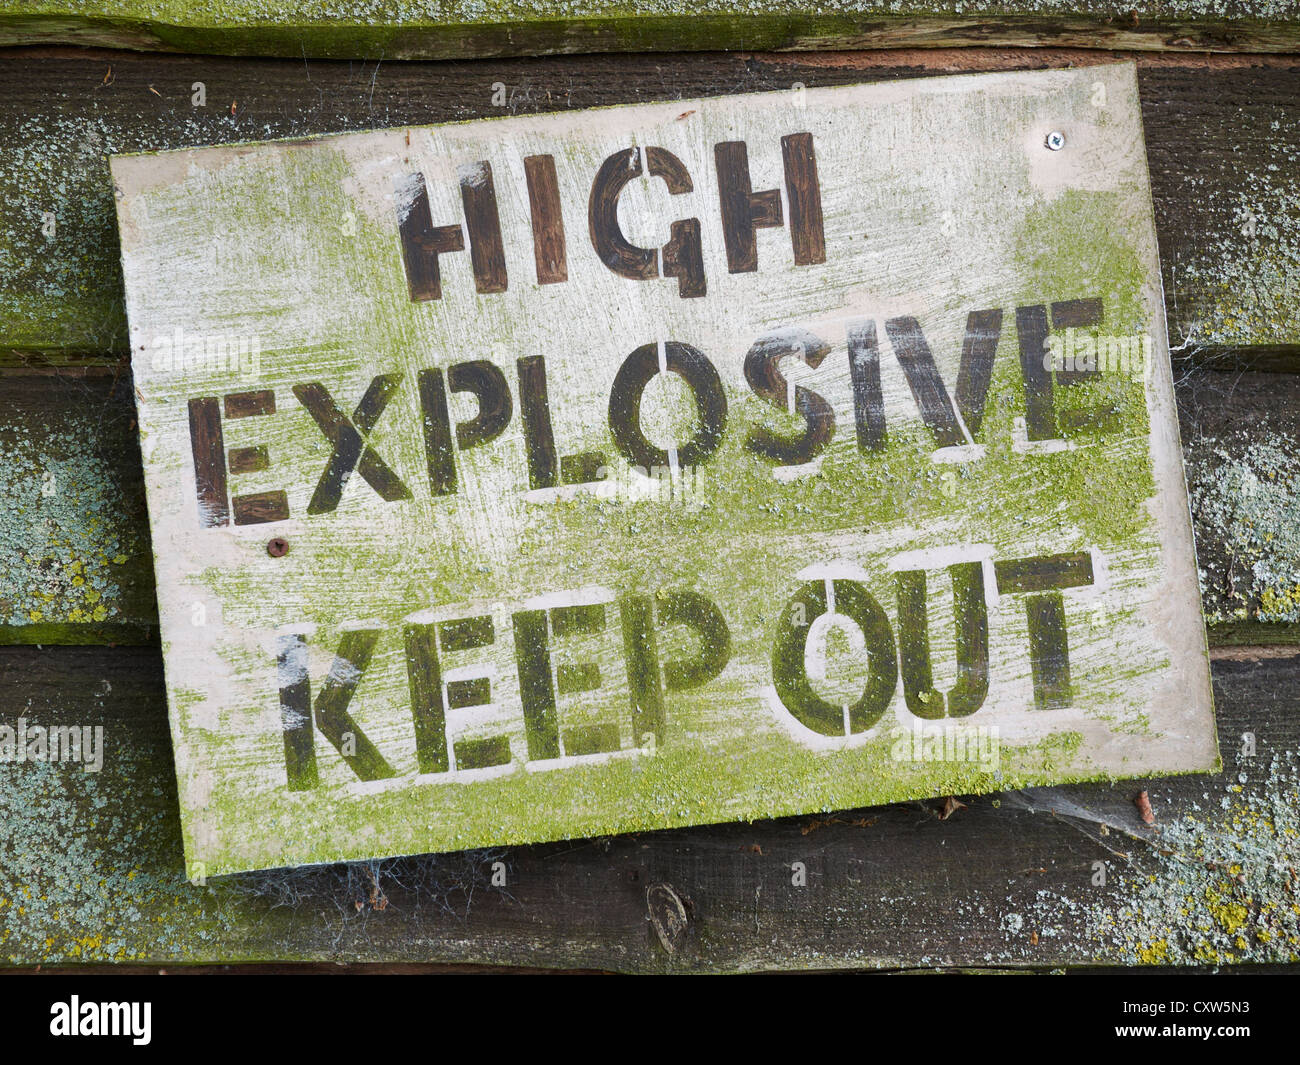 Wooden High Explosive Keep Out Sign - Stock Image